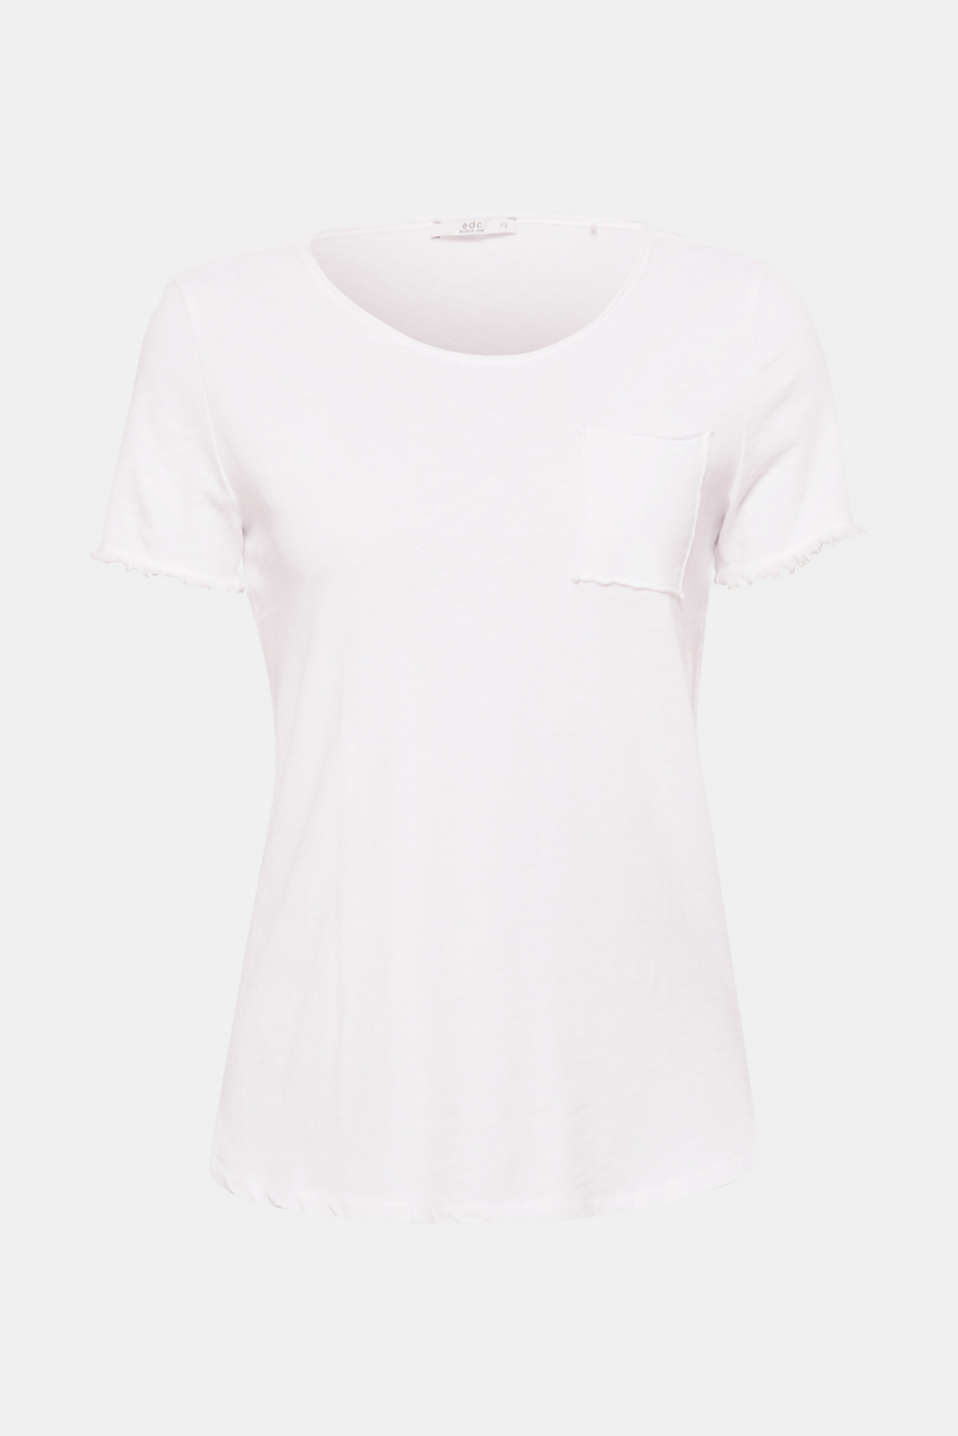 The airy texture, fine fringing and casual rolled edge give this T-shirt a trendy casual look!